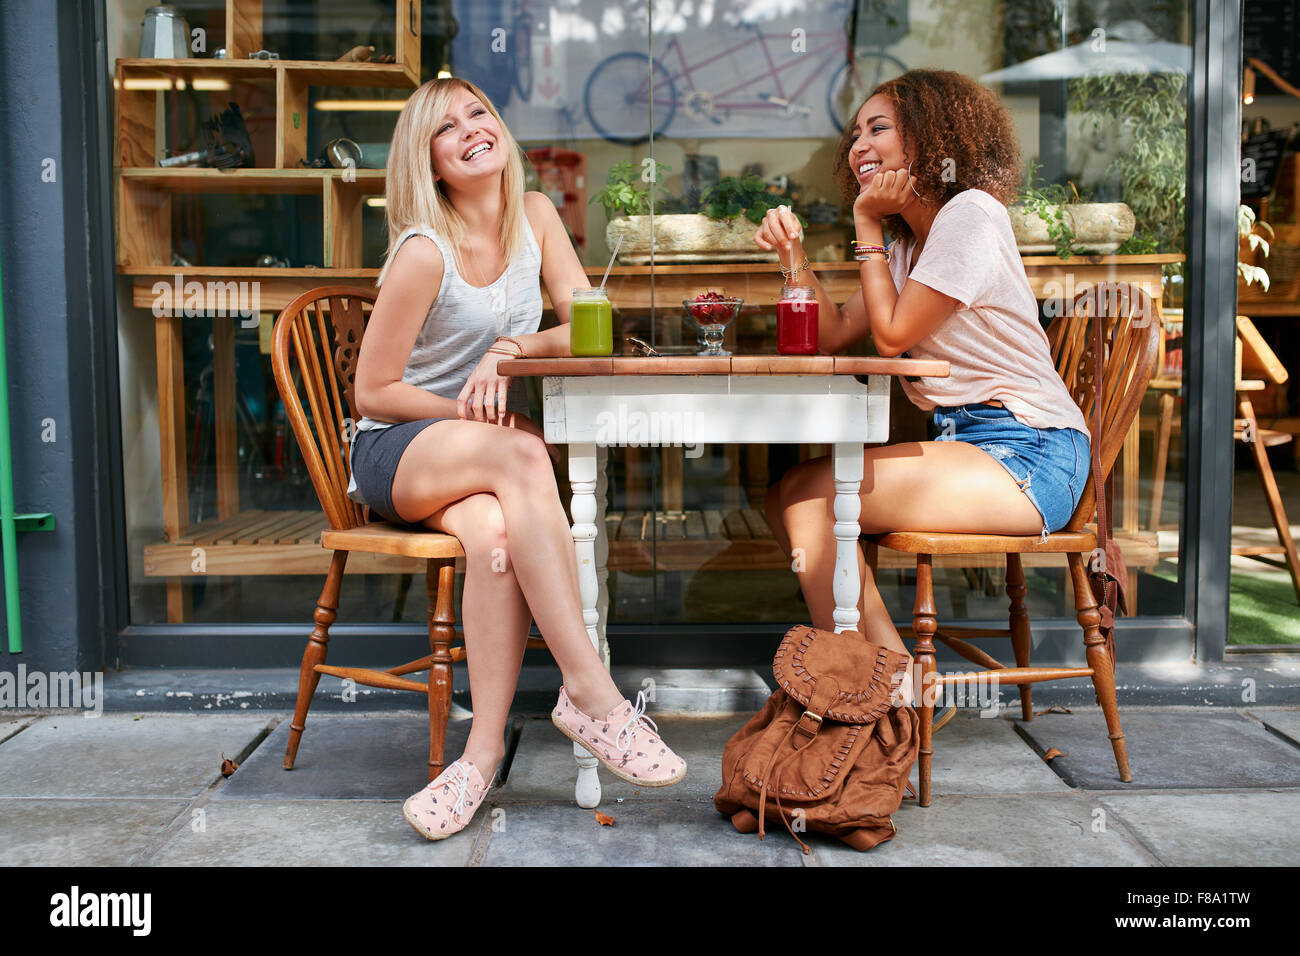 Two young friends sitting at outdoor cafe and smiling. Multiracial women hanging out at sidewalk restaurant. - Stock Image